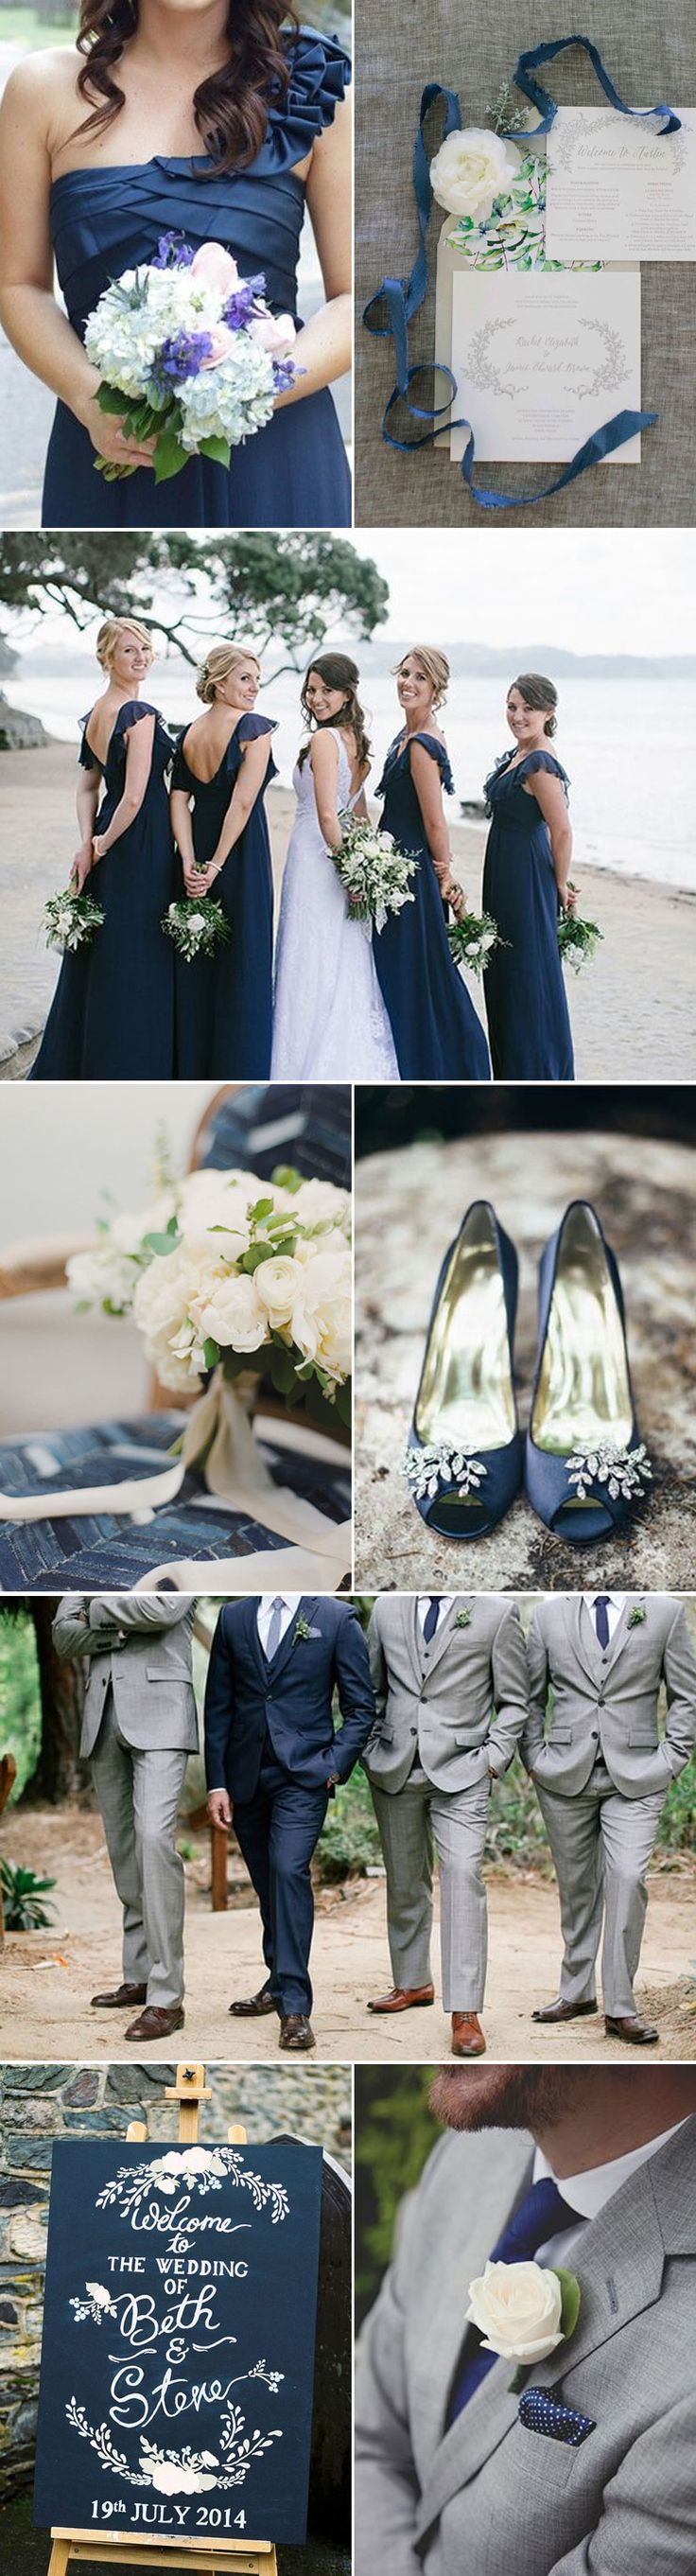 Indigo and Silver Wedding Ideas for Brides and Grooms.